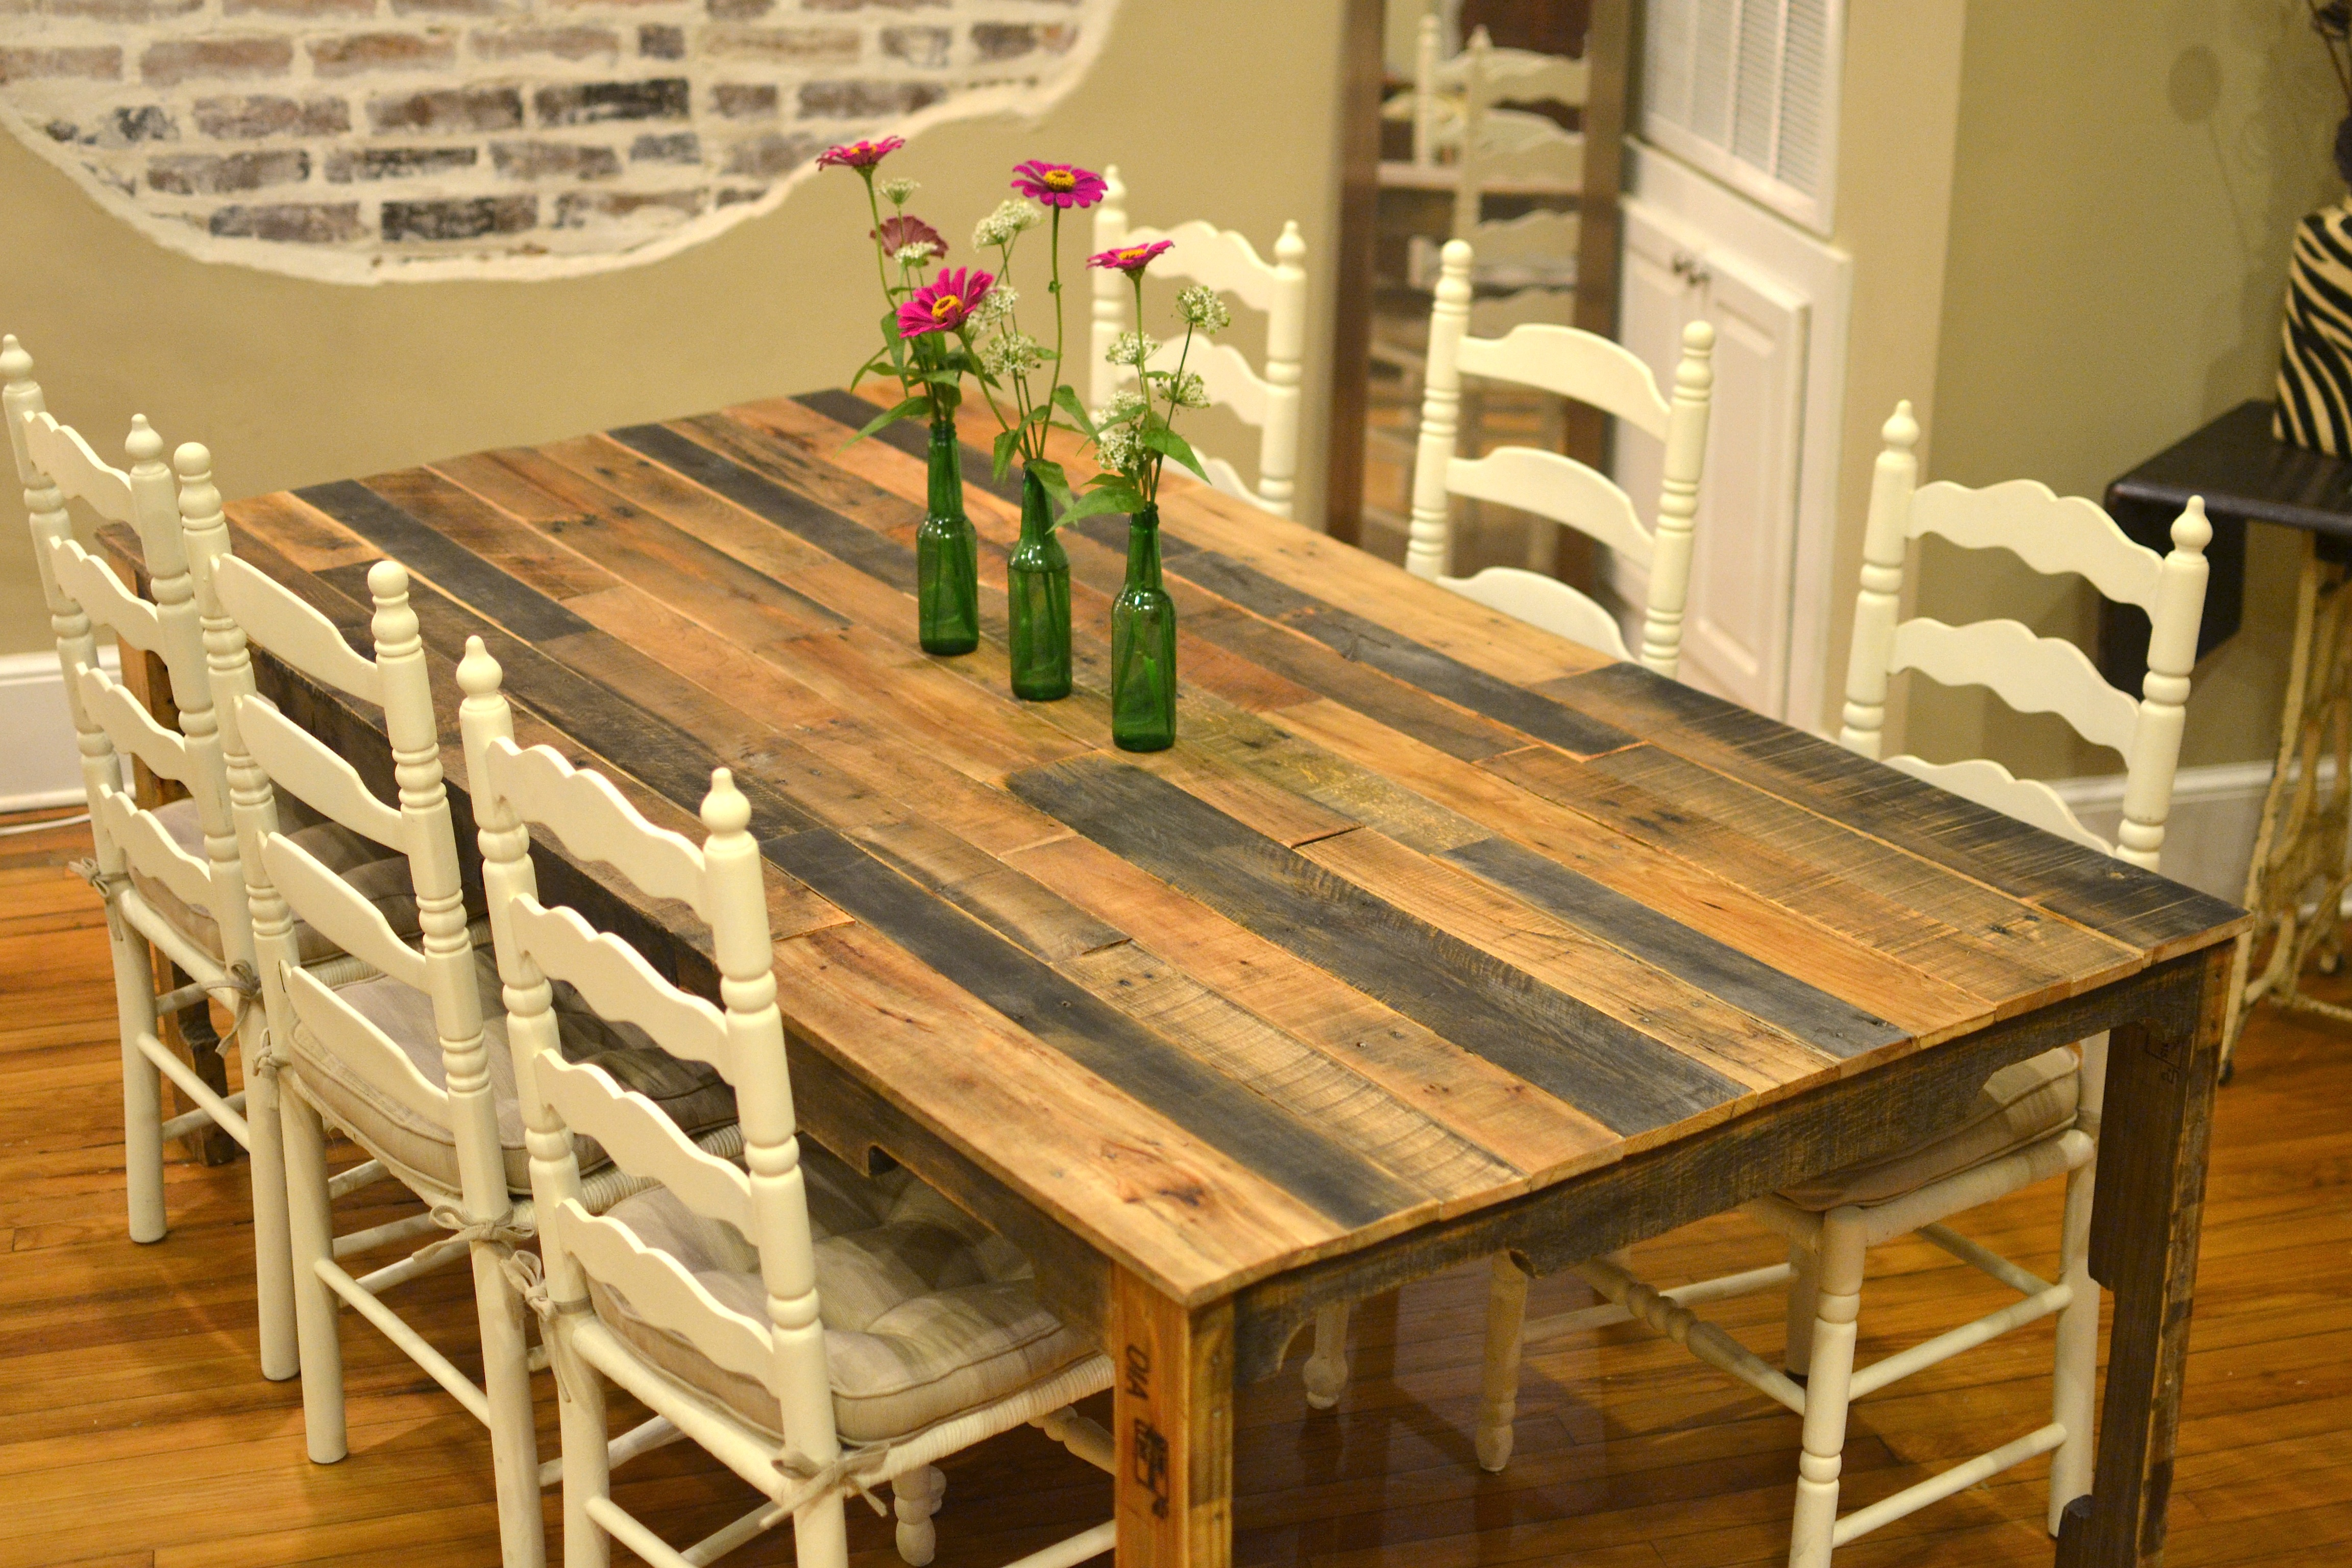 how to make a table from shipping pallets make kitchen table Harvest style dining table made from shipping pallets